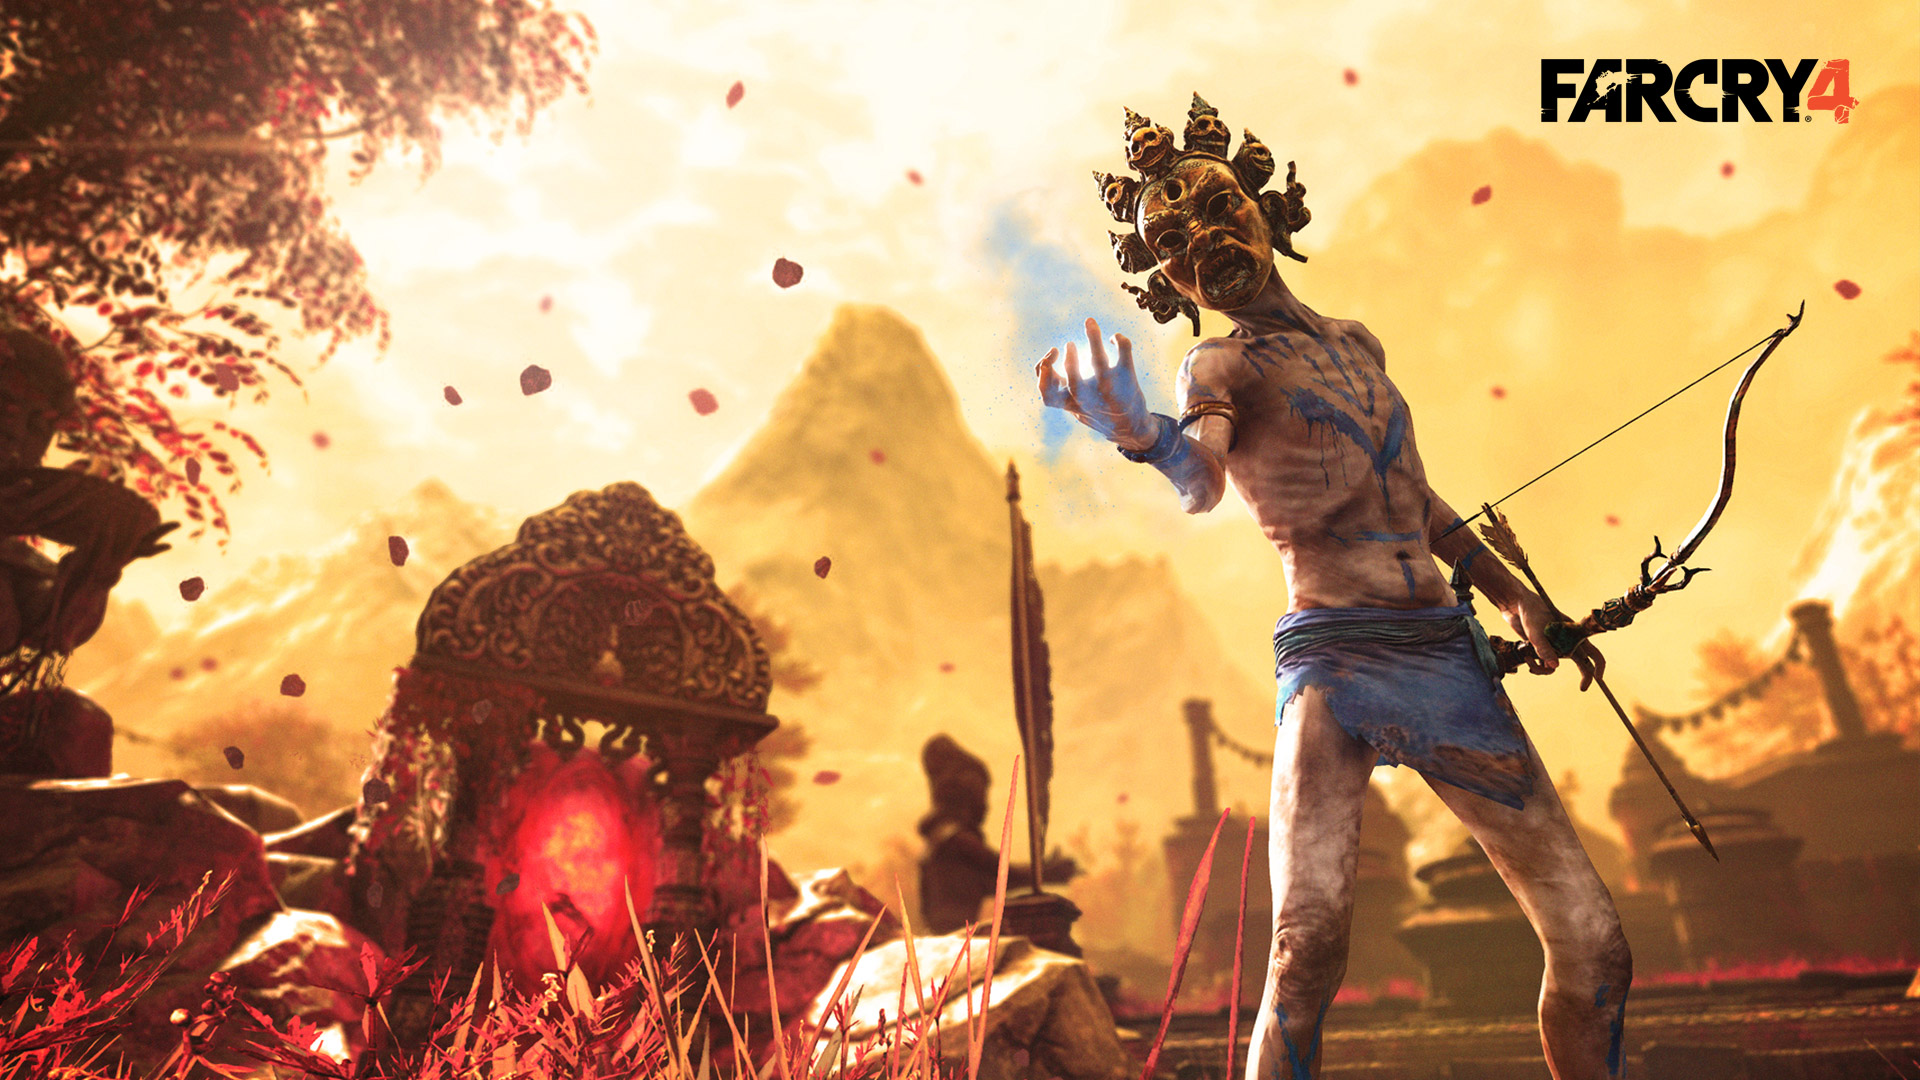 Free Download Far Cry 4 Wallpaper In 1920x1080 1920x1080 For